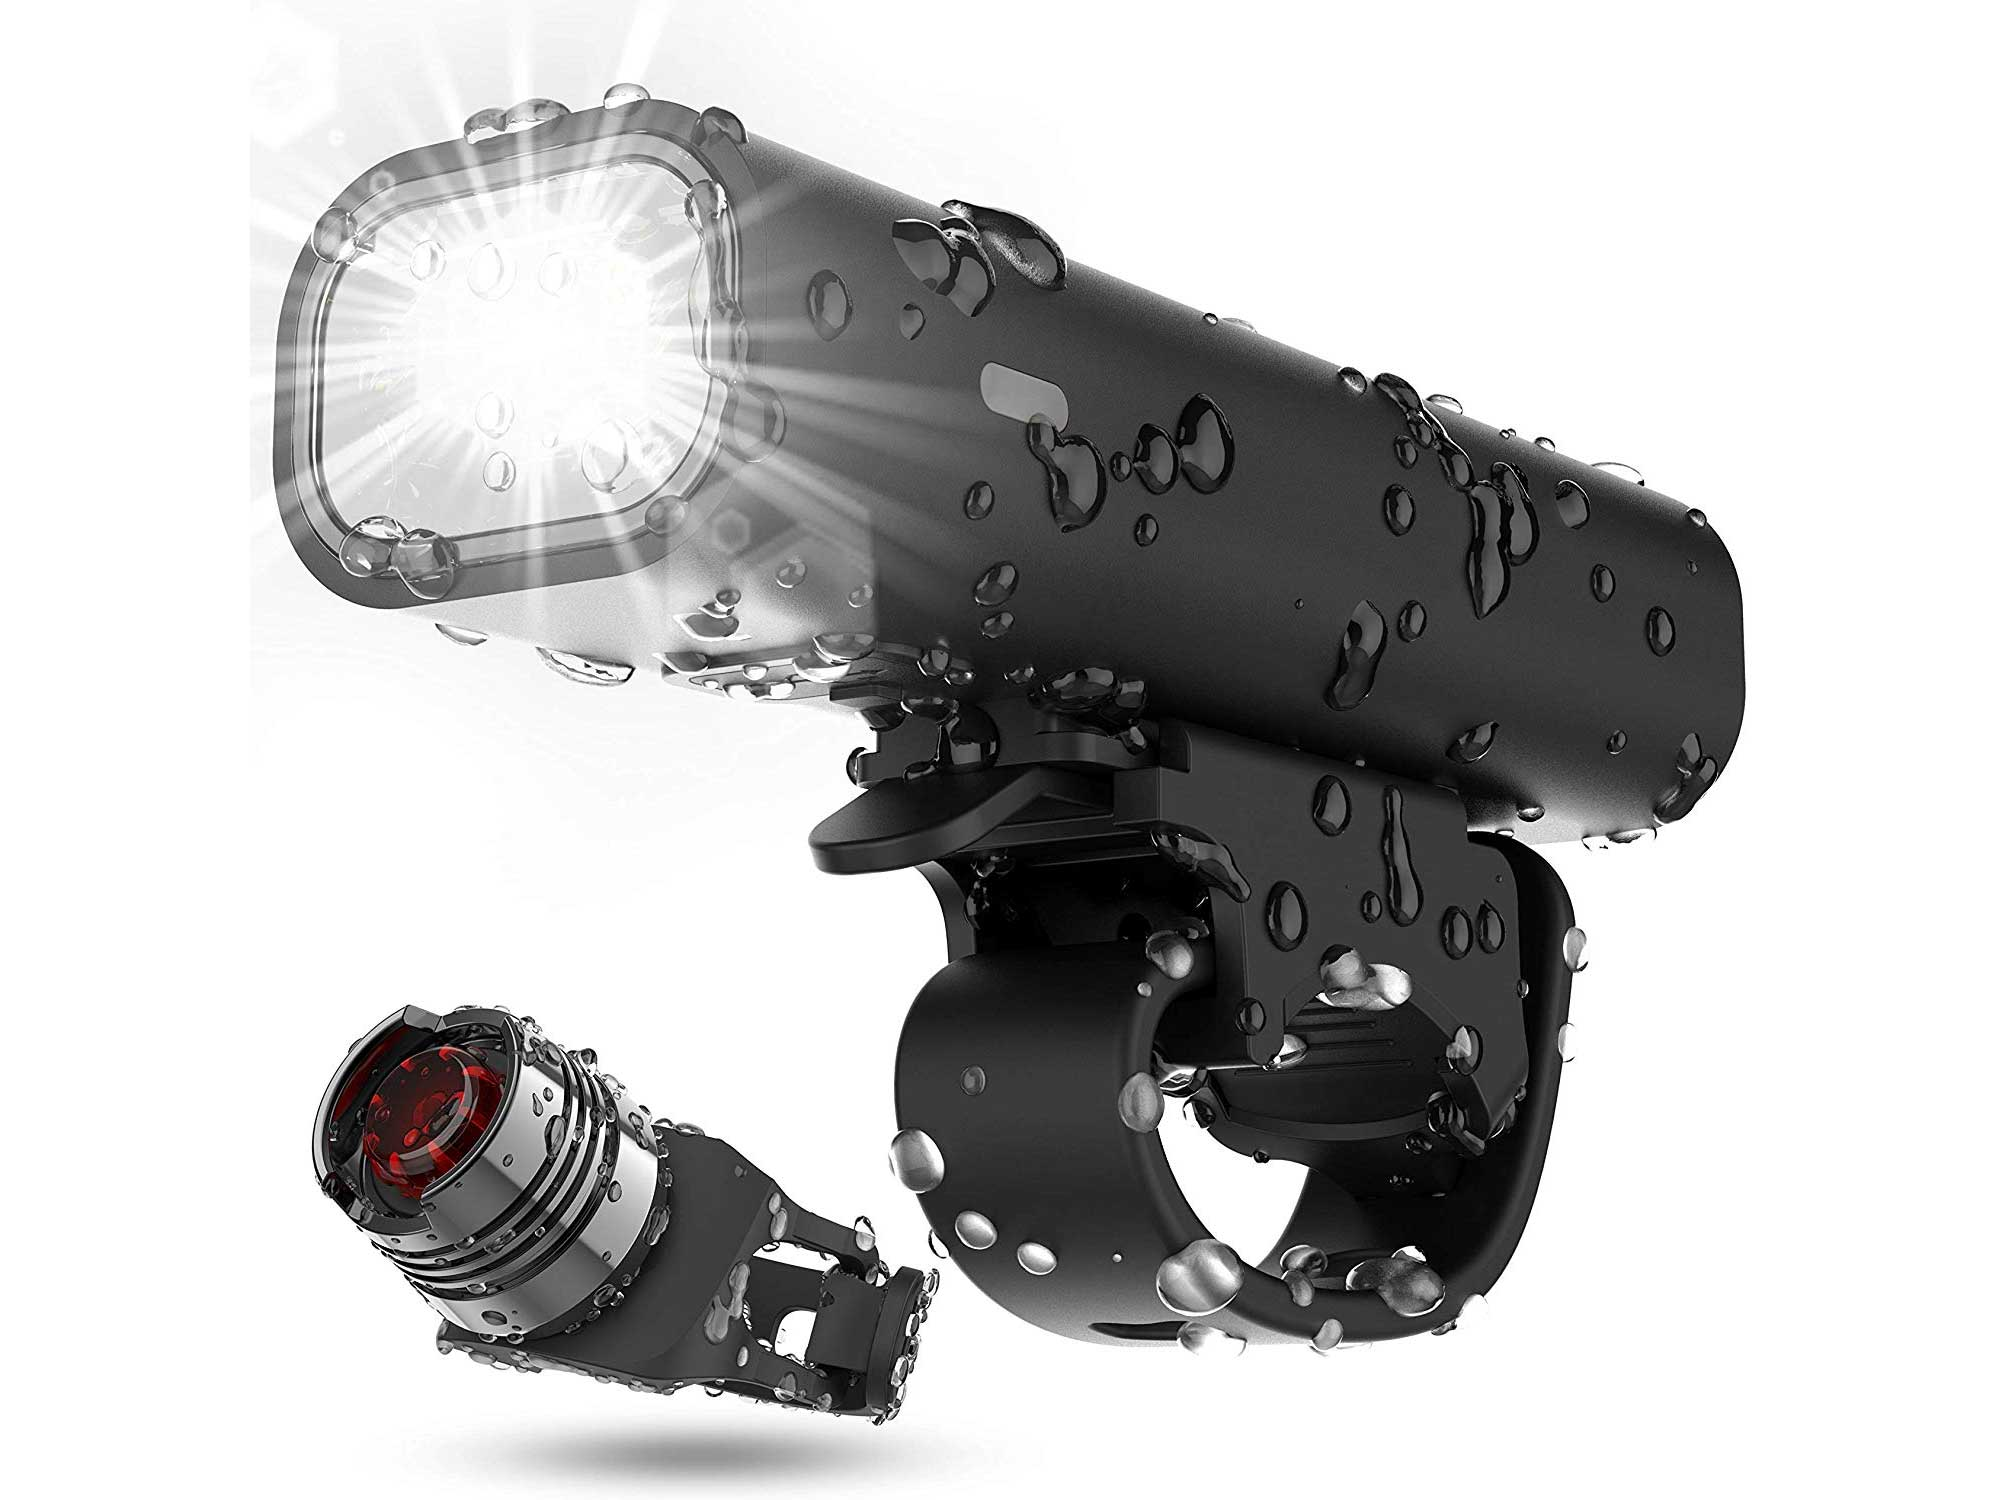 USB Rechargeable Bike Light Set, Runtime 8+ Hours 400 Lumen Super Bright Headlight Front Lights and Back Rear